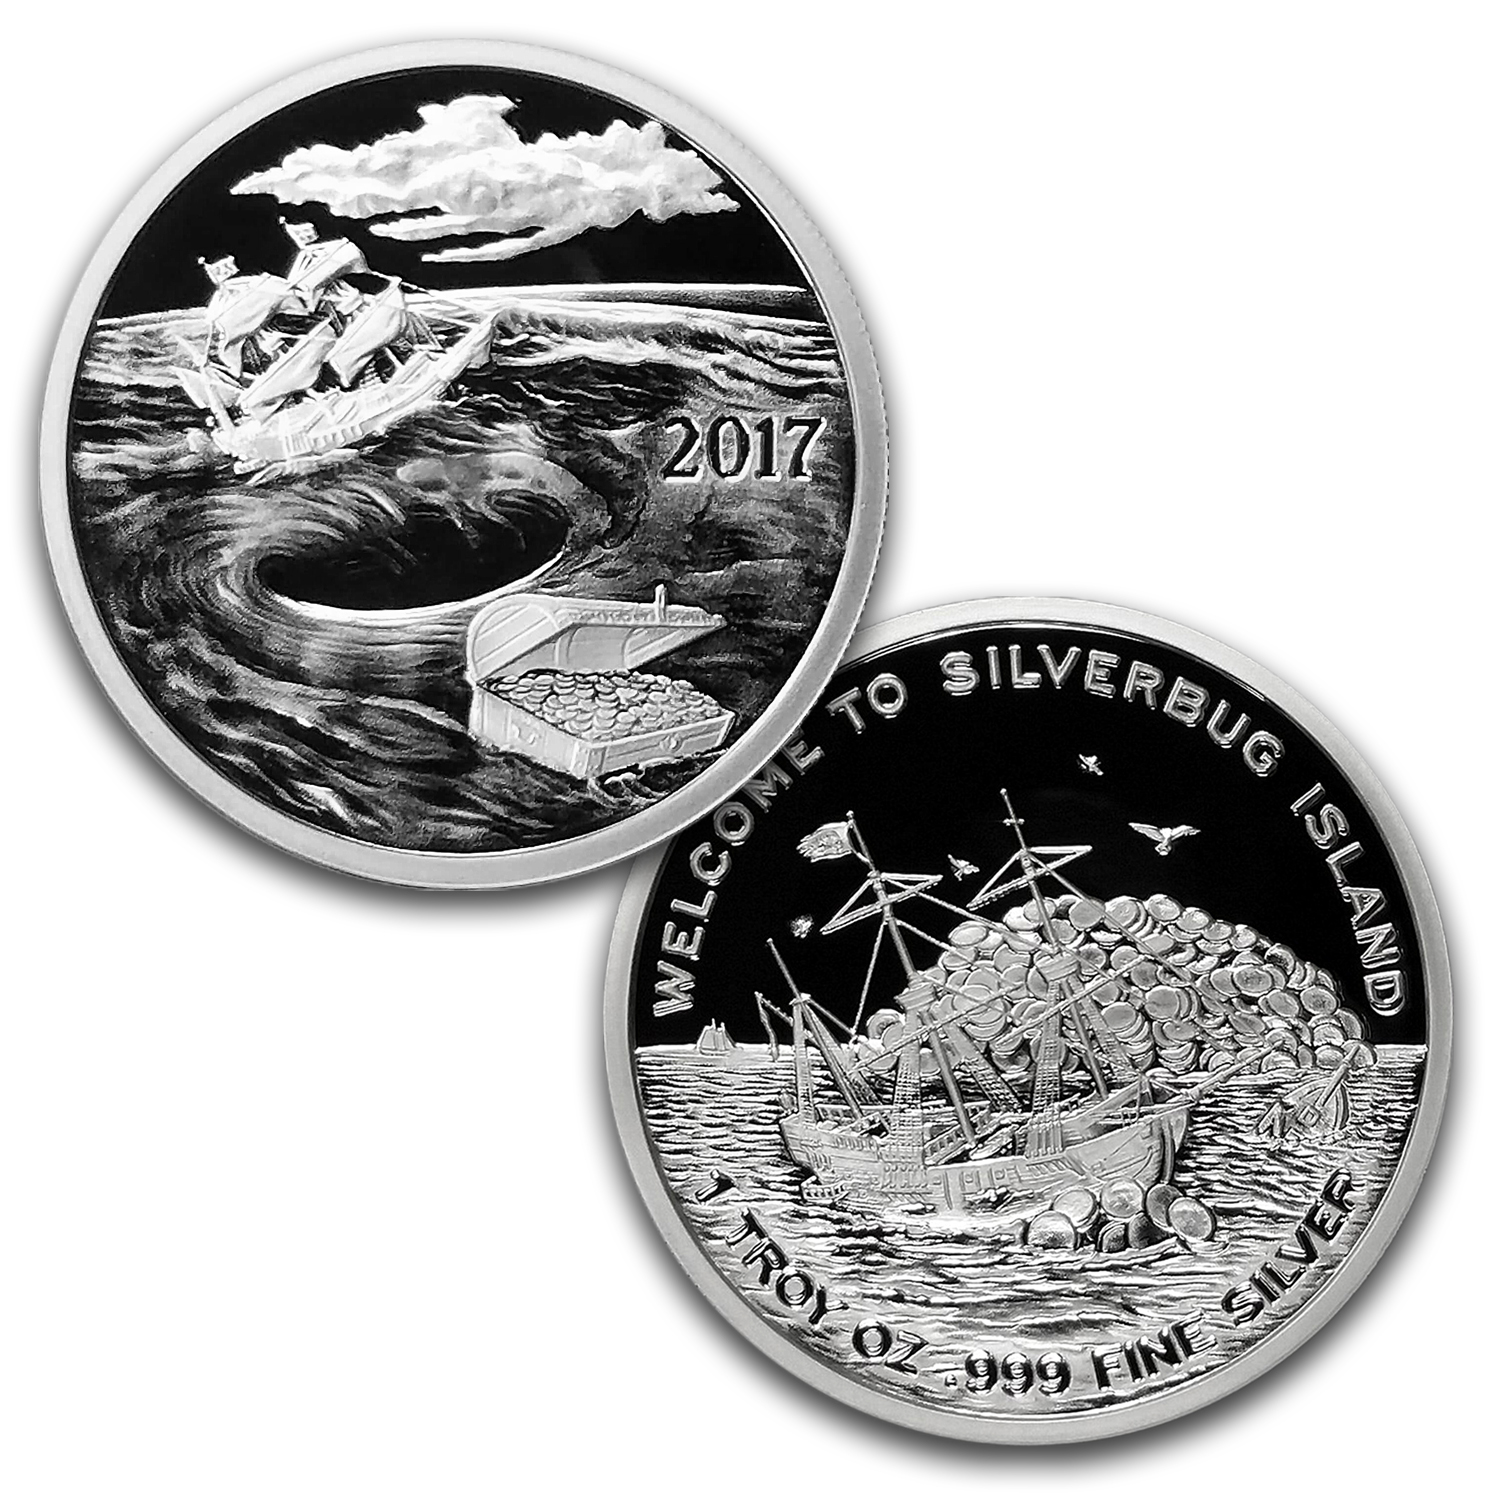 1 oz Silver Proof 4-Round Set - 2015-2017 Silverbug Island